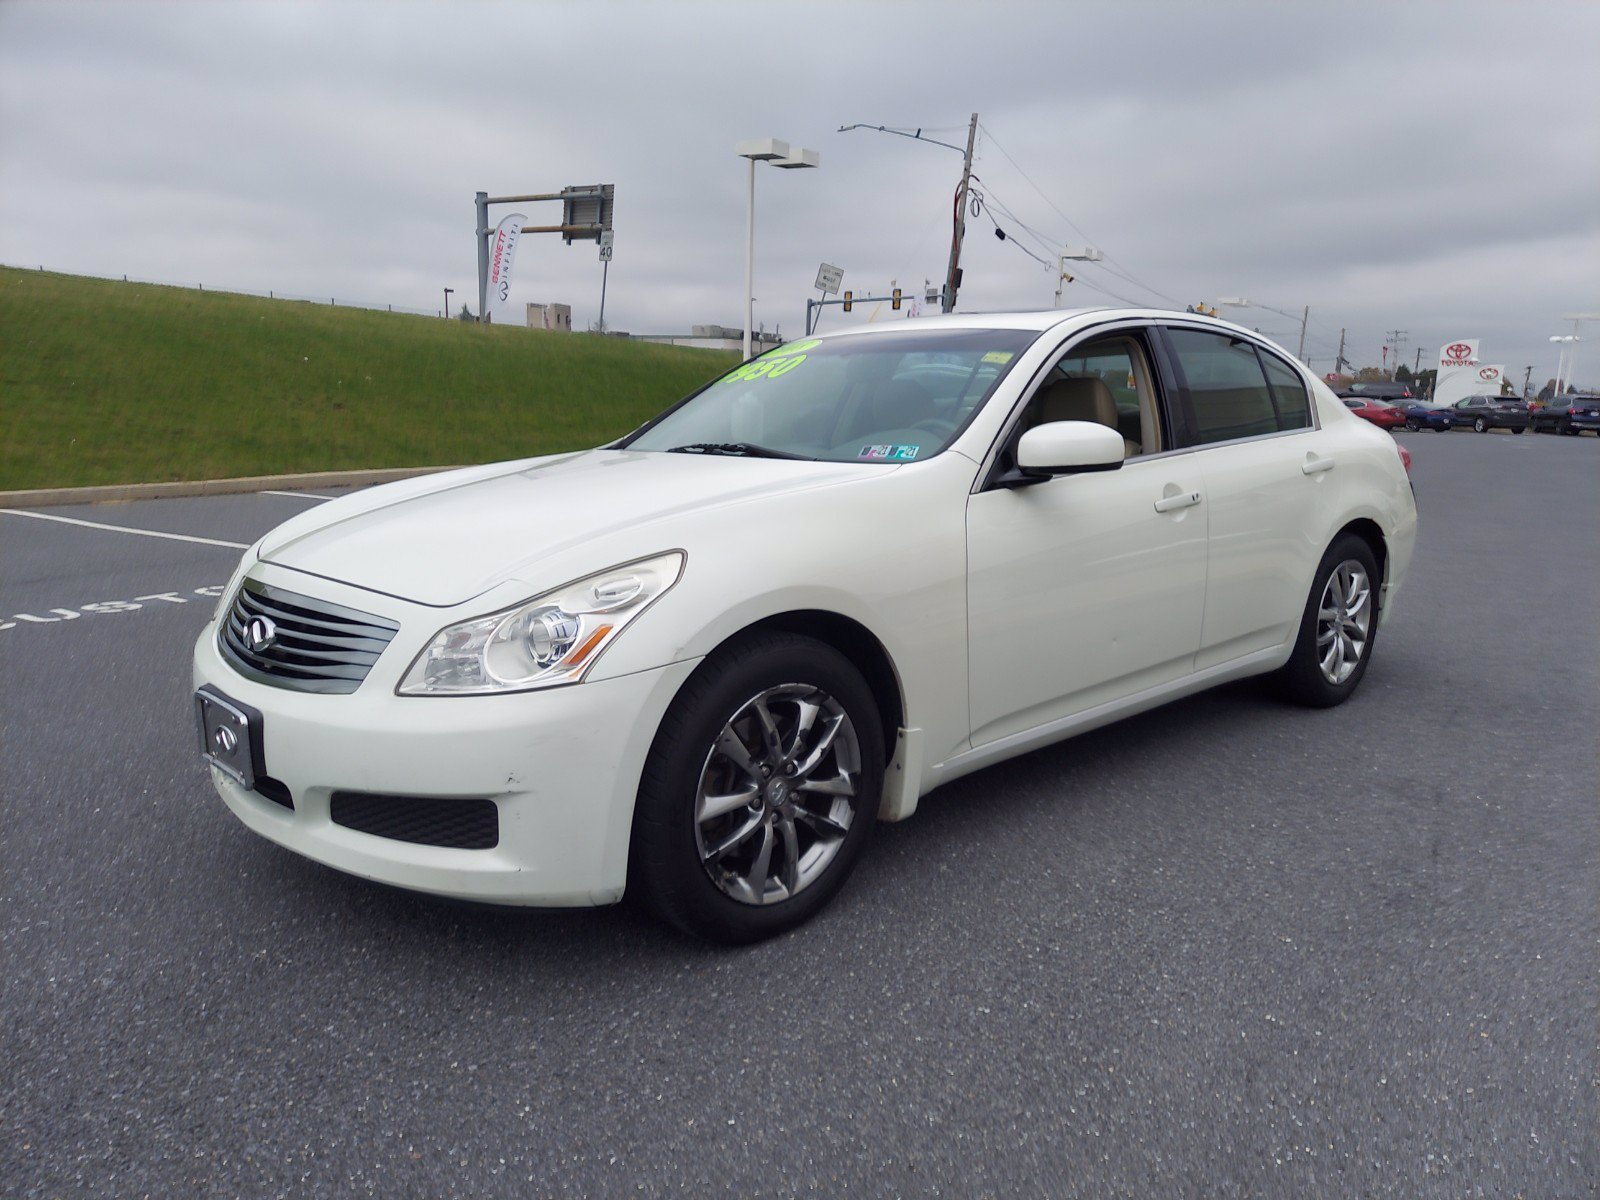 Pre-Owned 2008 INFINITI G35 Sedan x